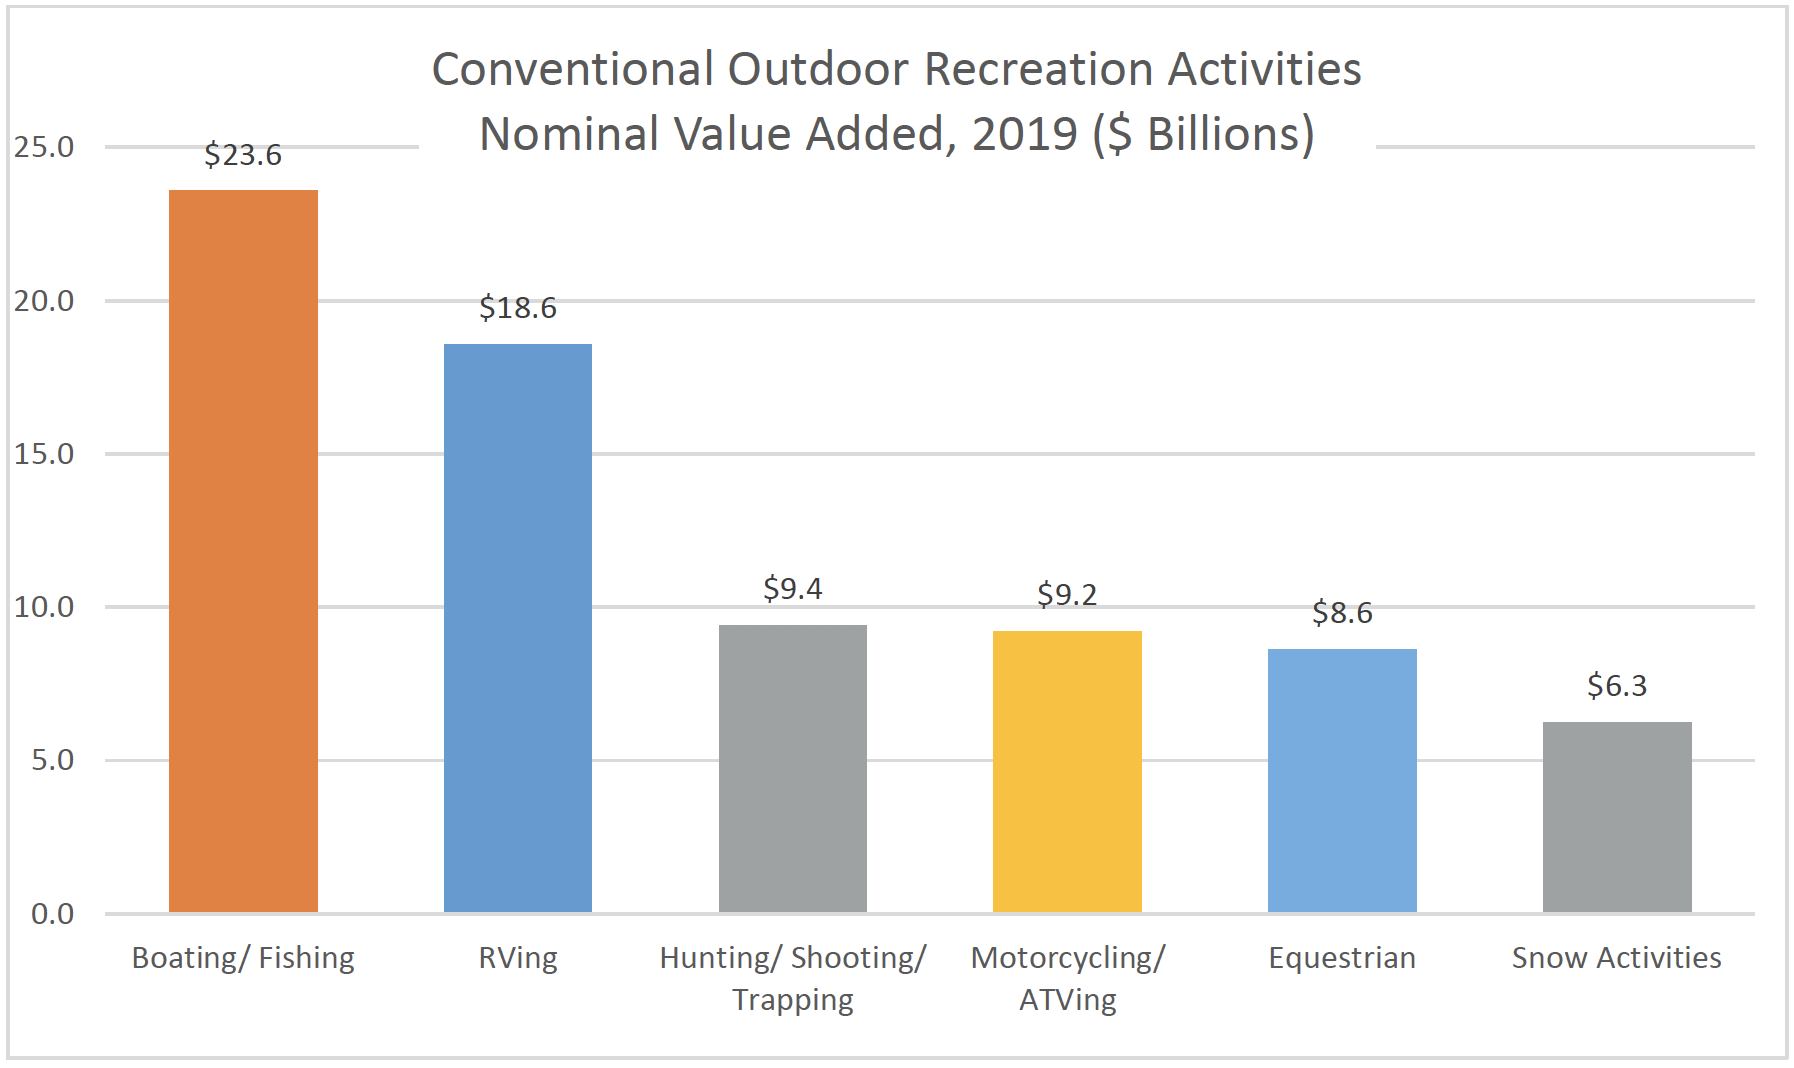 Recreational Activities Nominal Value Added